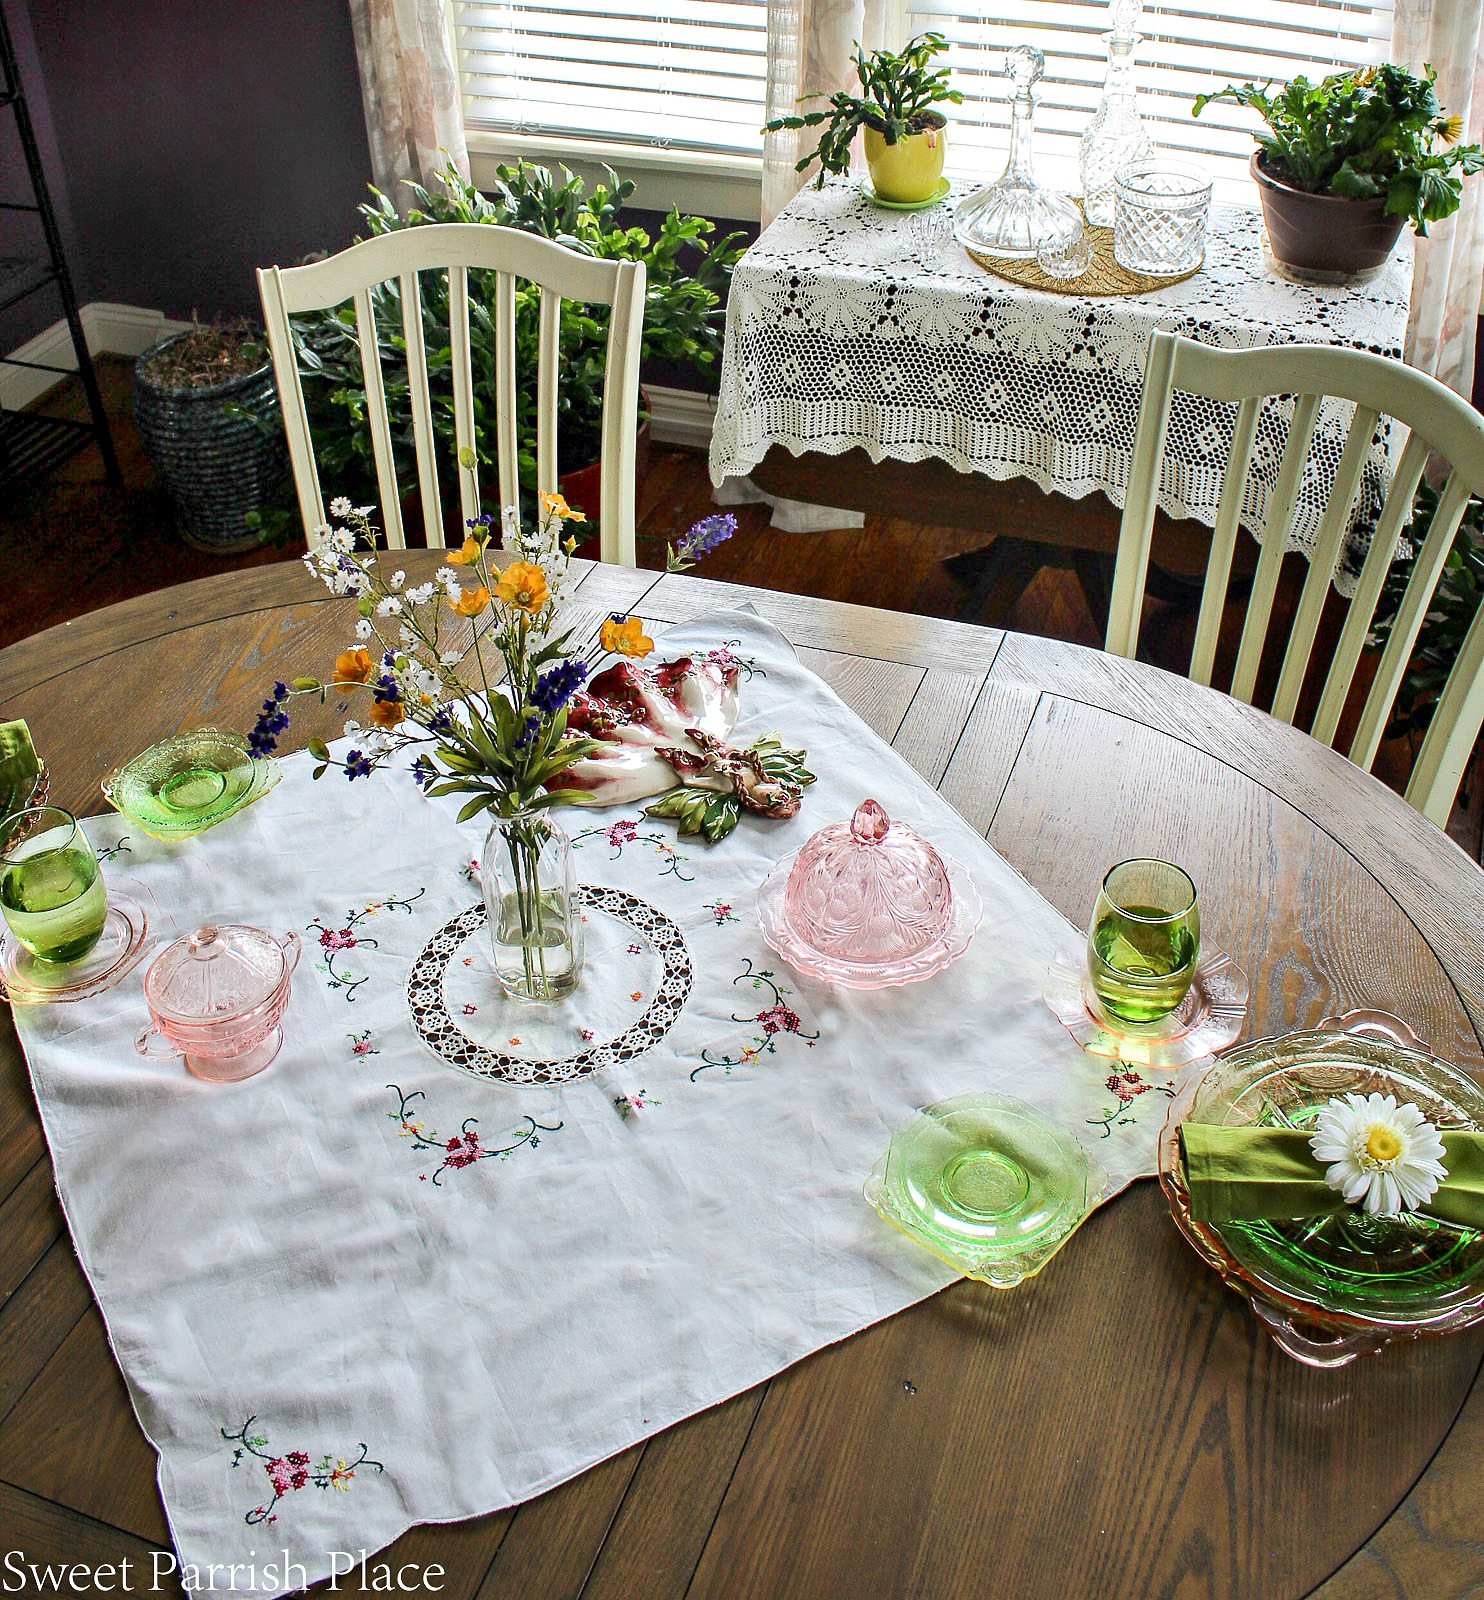 97 year old home tour-table setting